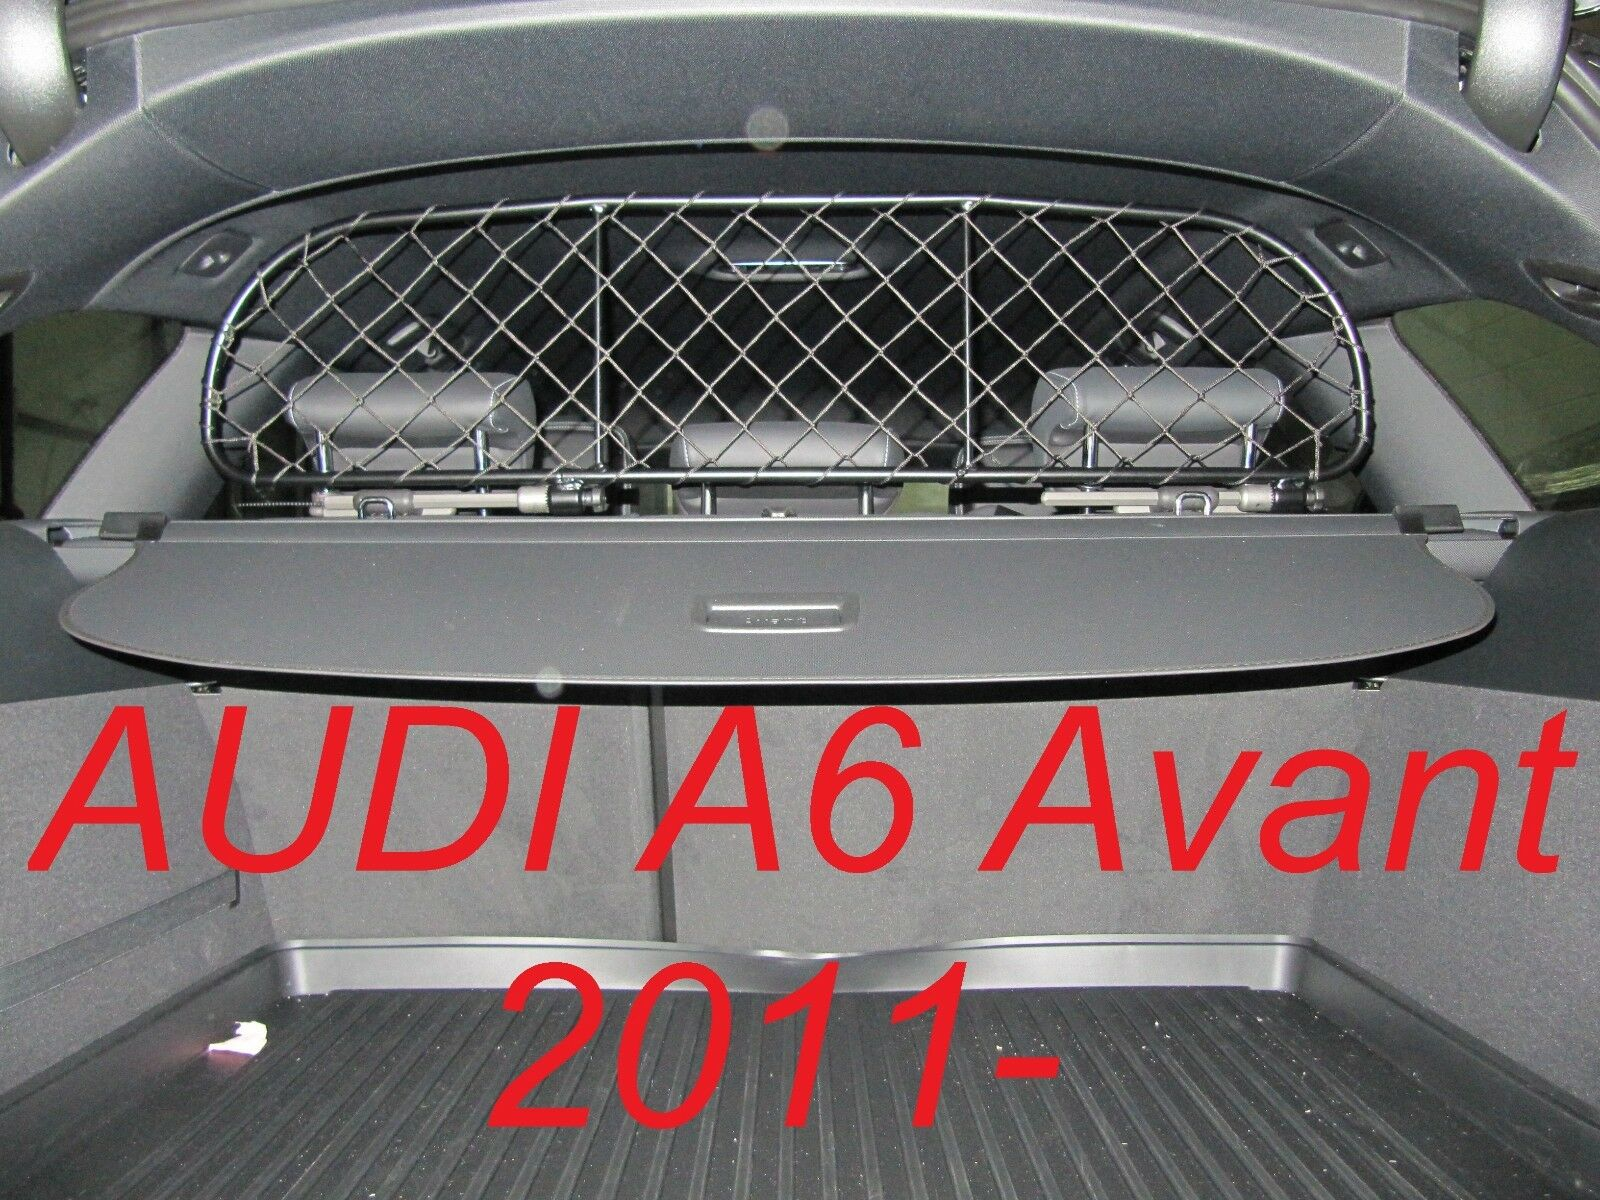 Dog Guard, Pet Barrier Net and Screen AUDI A6 Avant 2011  - baggage & pets